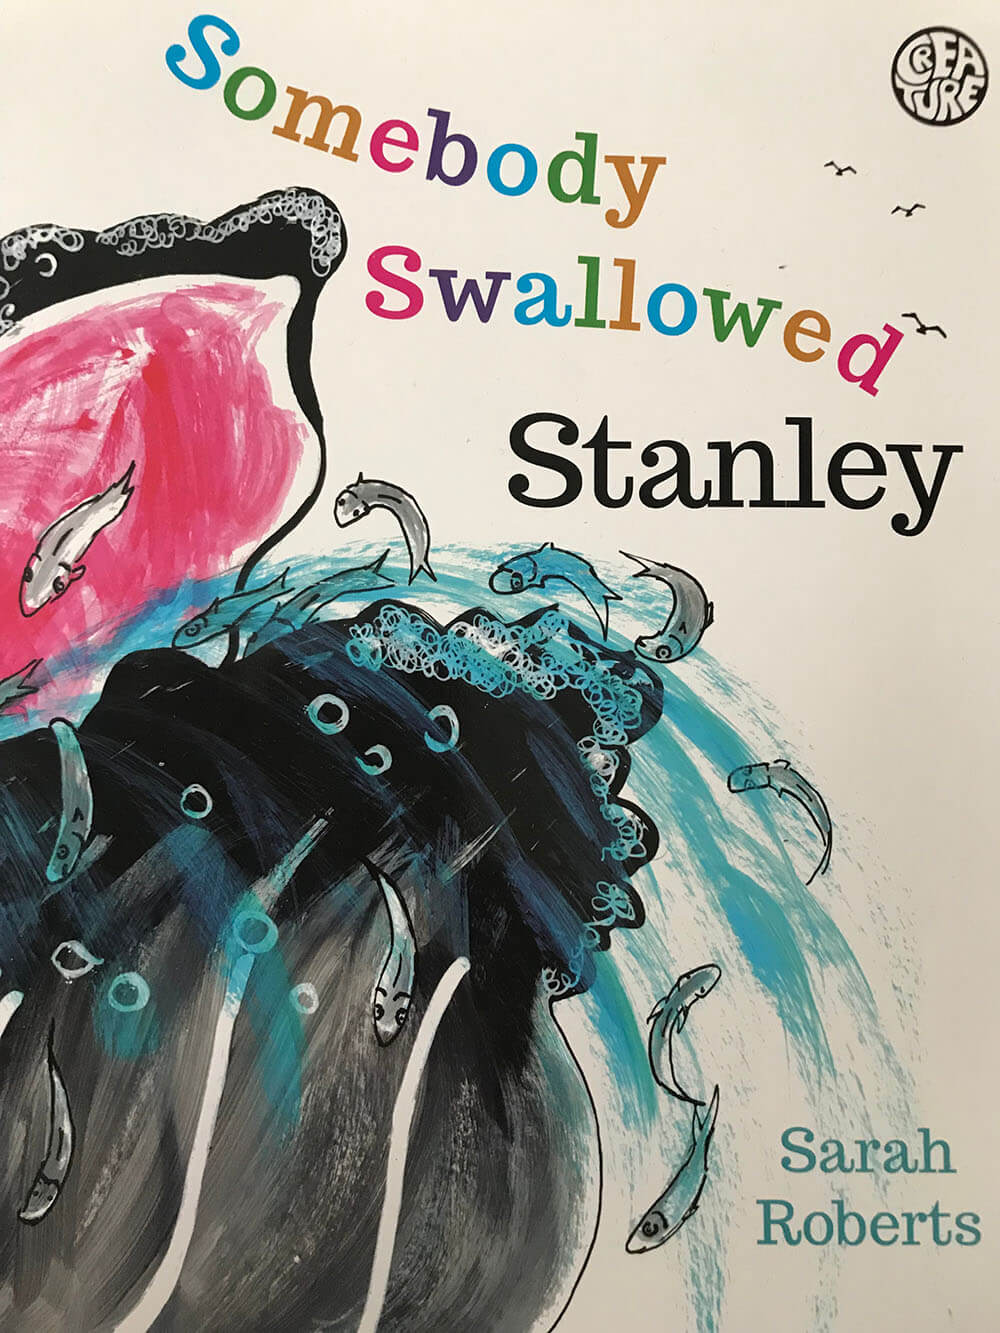 World Book Day - Somebody Swallowed Stanley